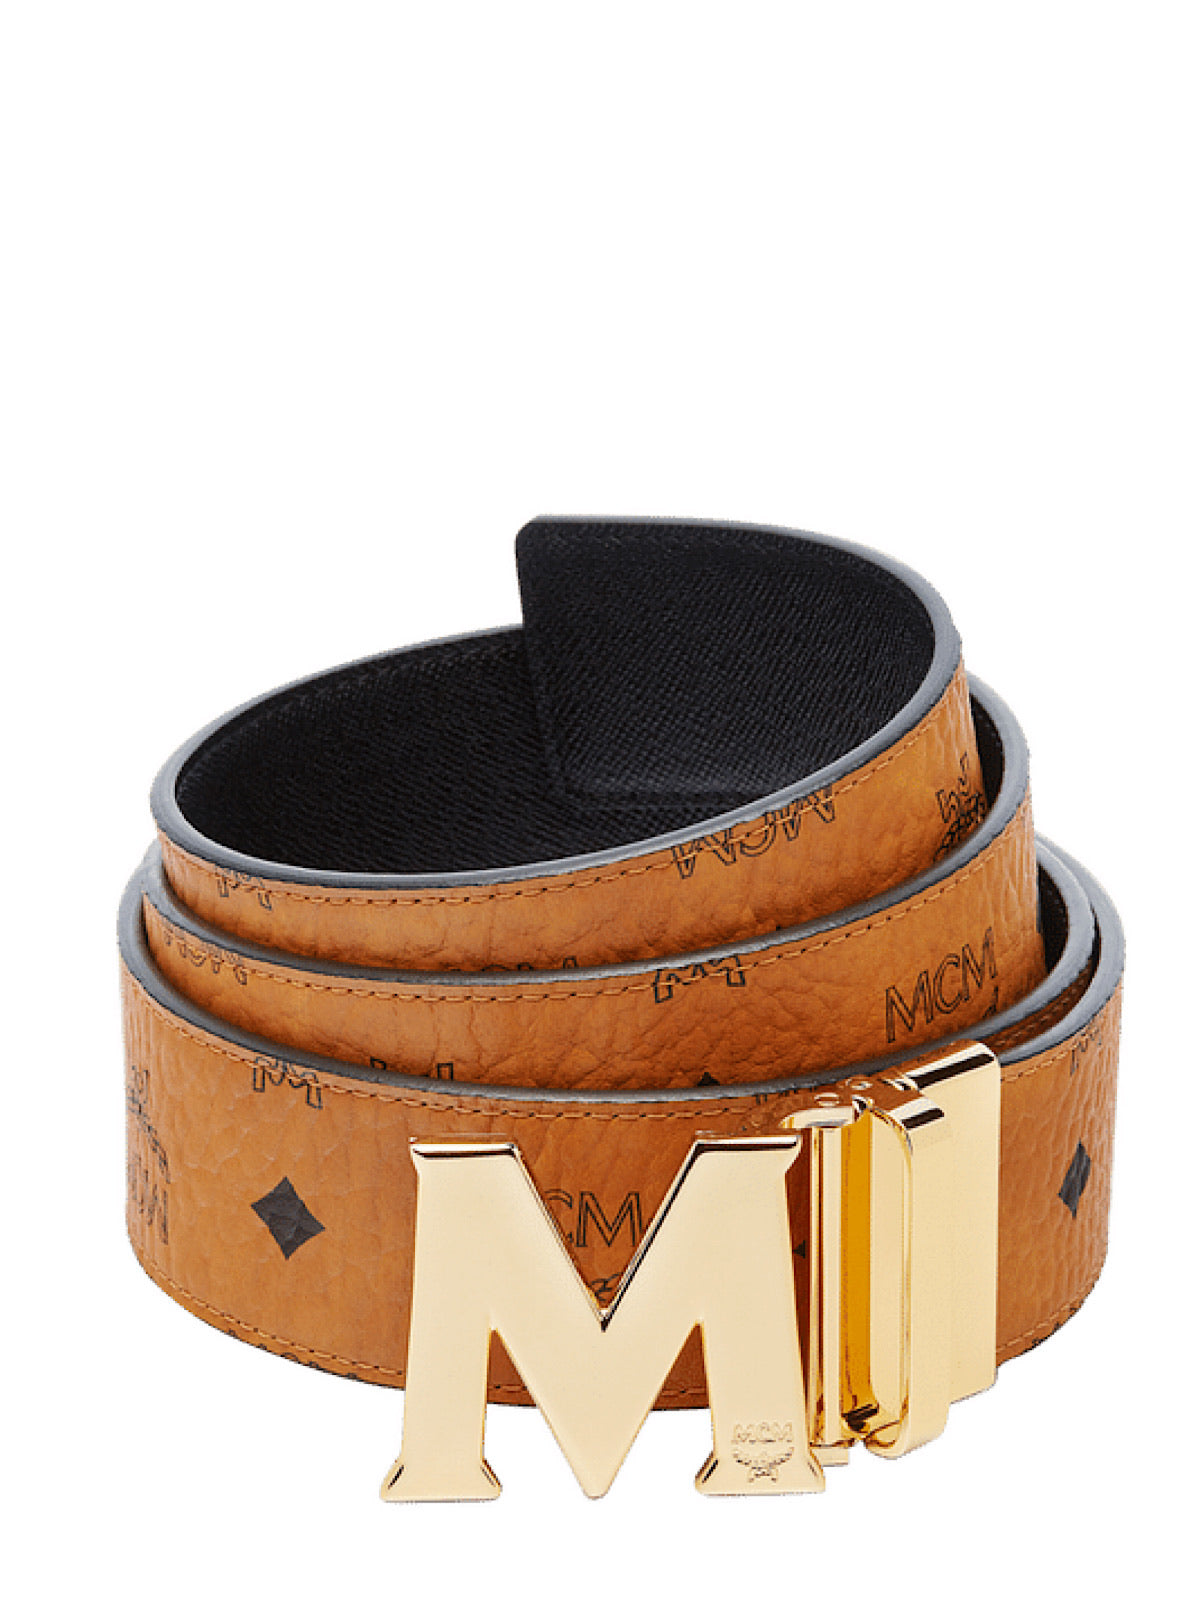 MCM Belt - Reversible - Cognac W Gold Buckle